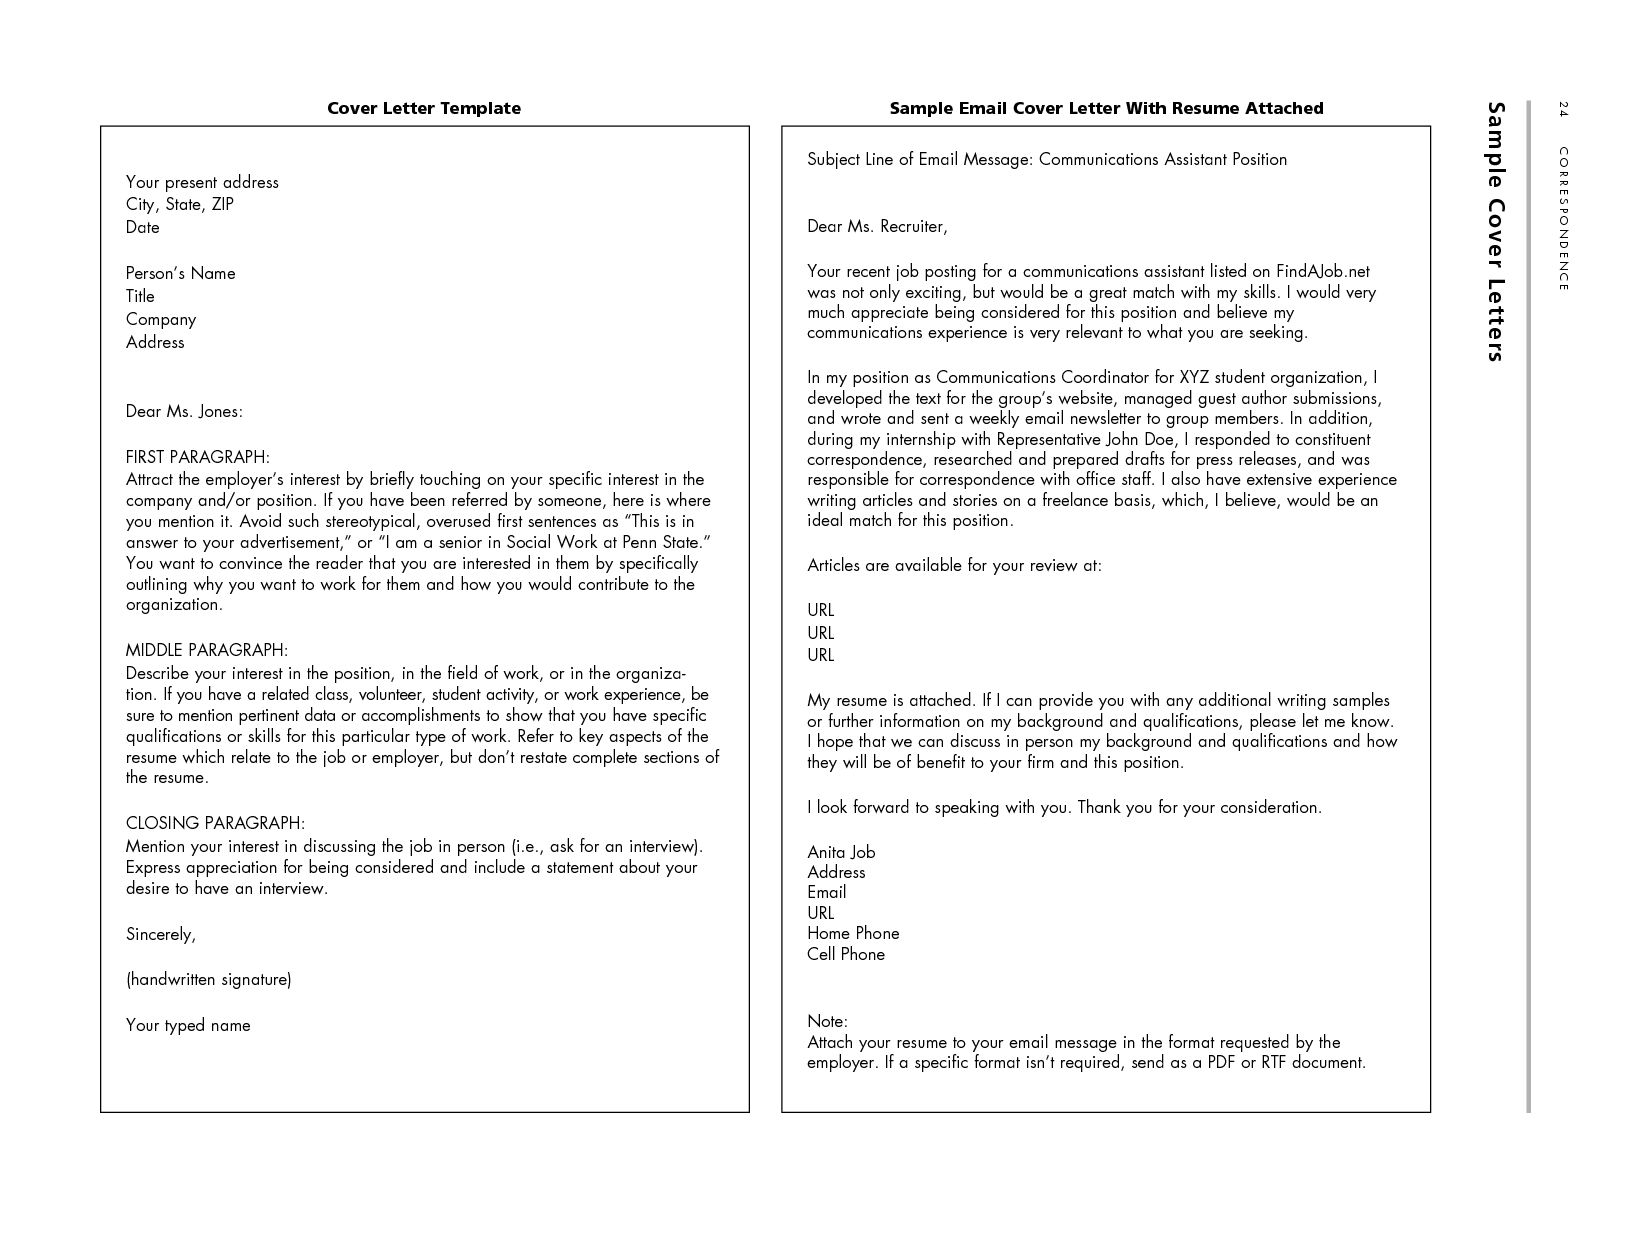 Email Cv Cover Letter Template Resume Format Cover